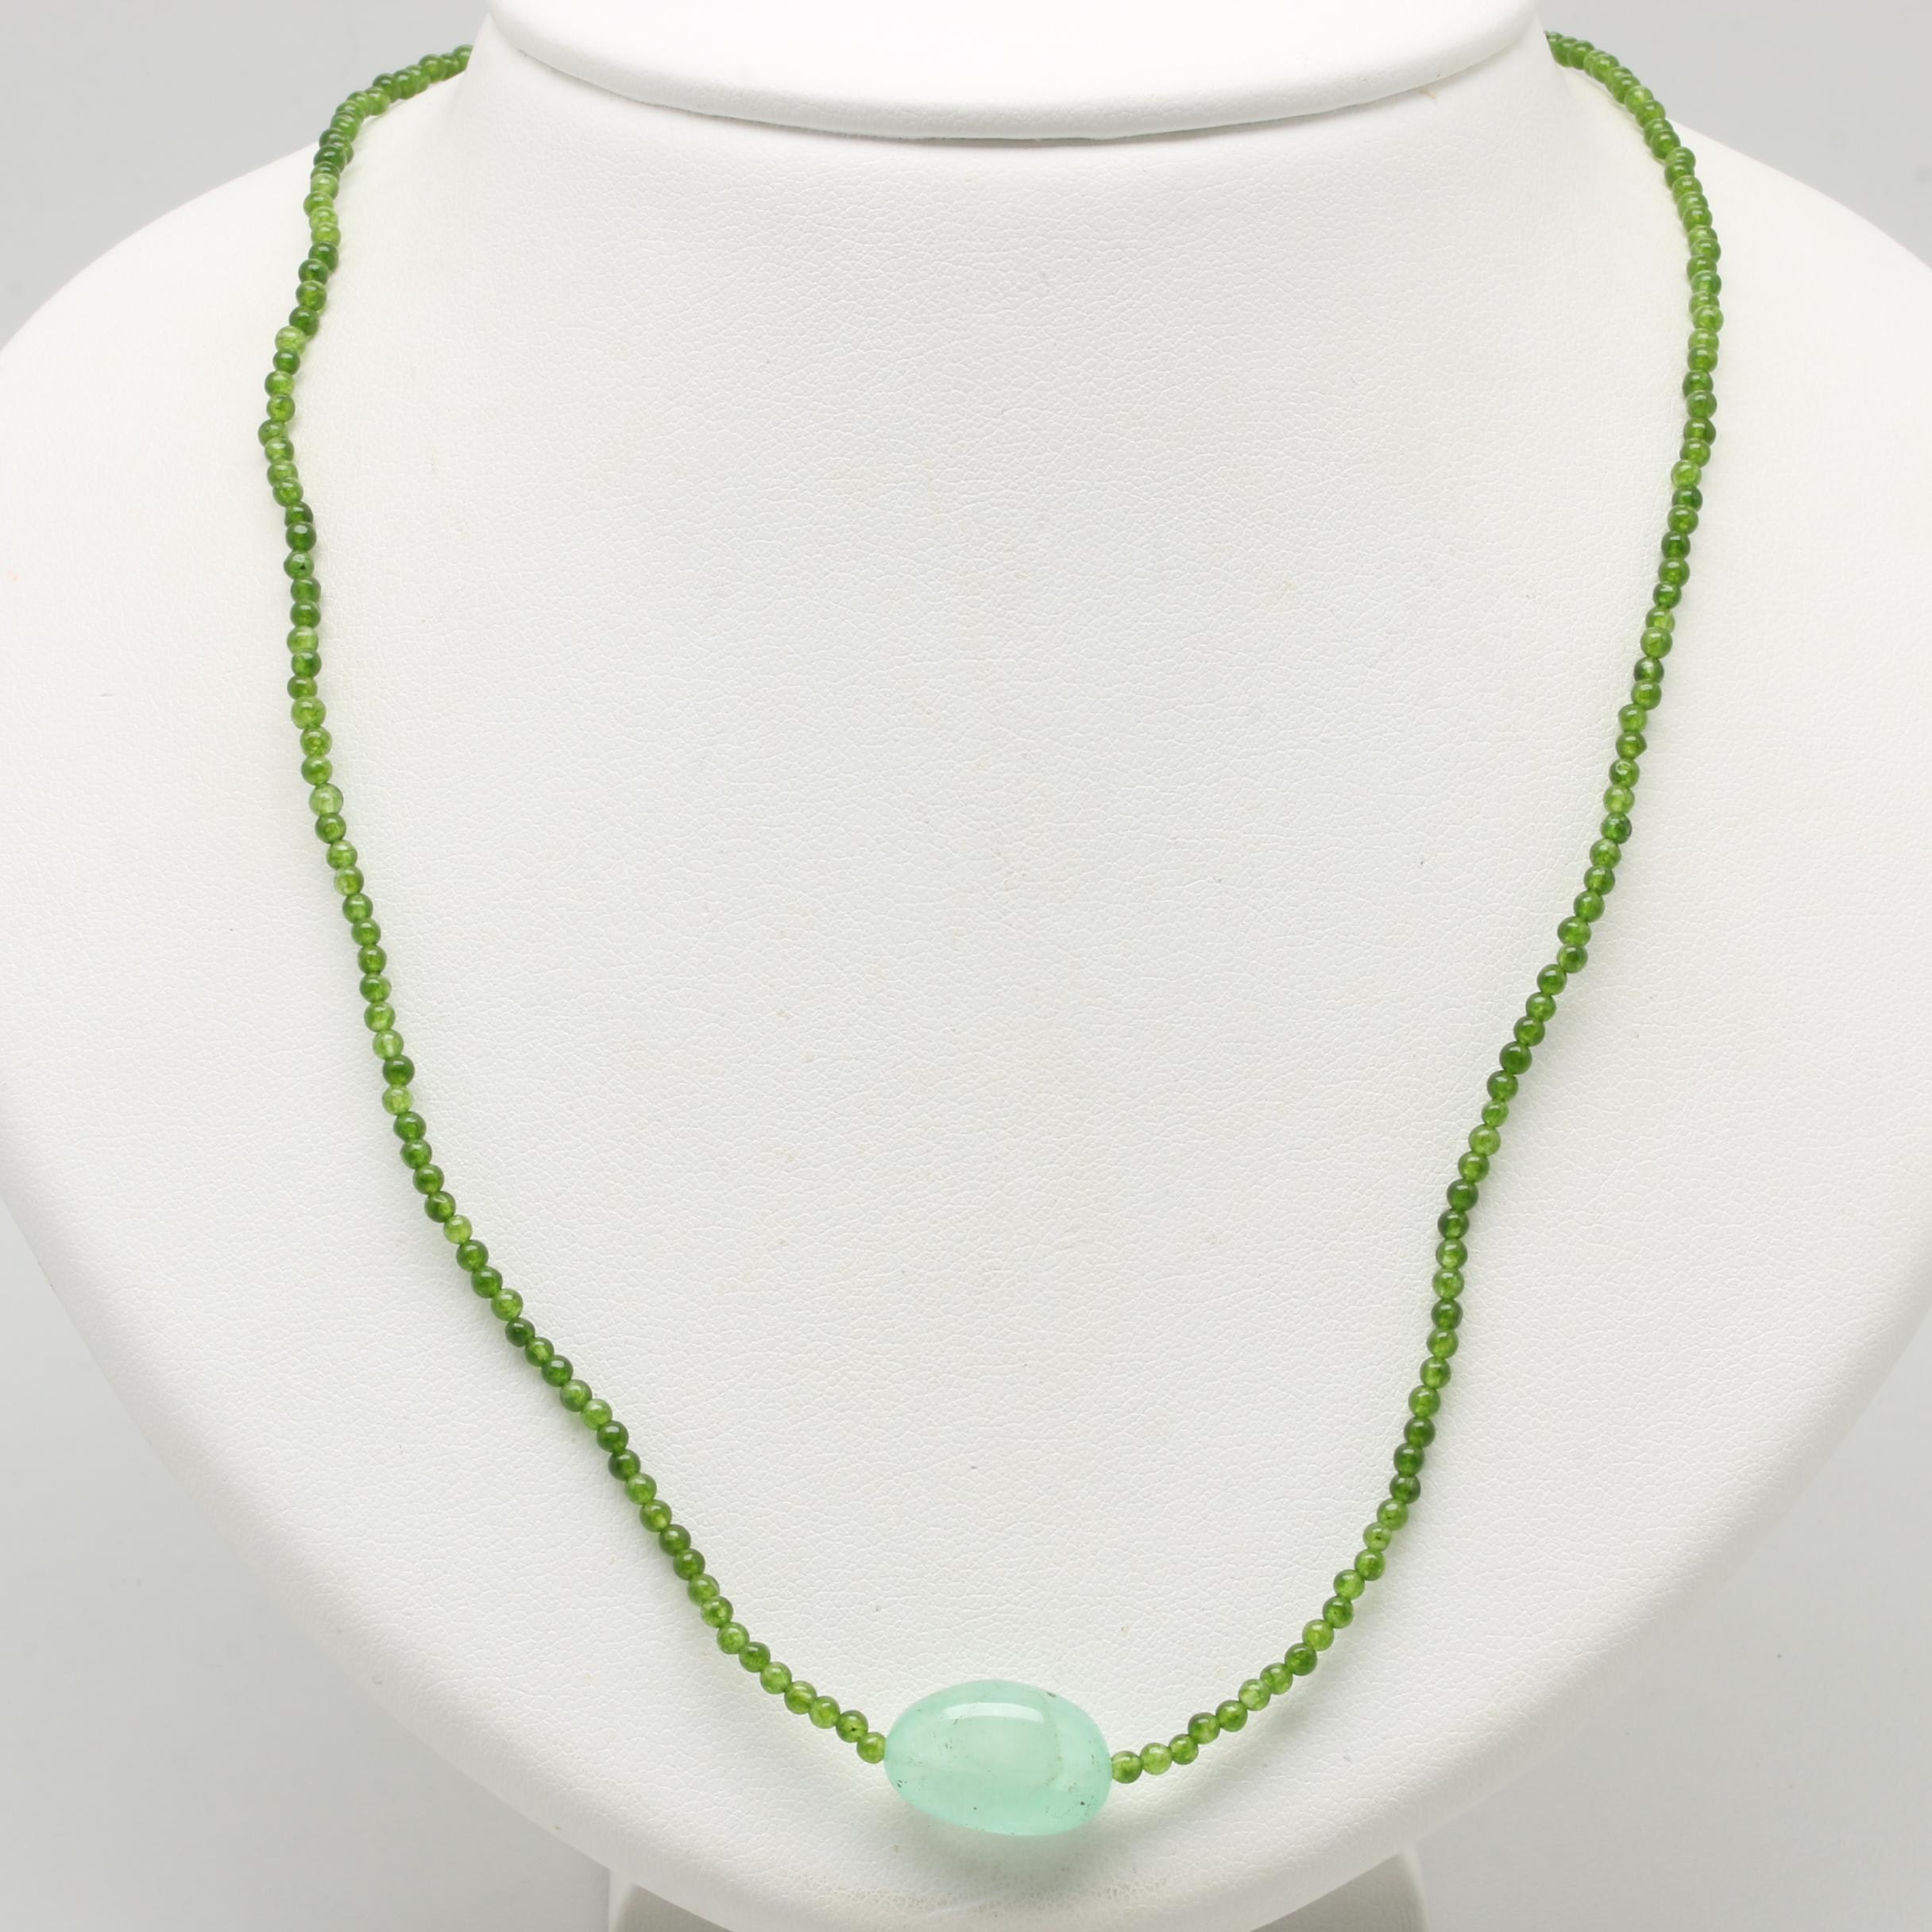 14K Yellow Gold Cultured Pearl, Prehnite and Green Quartz Necklace